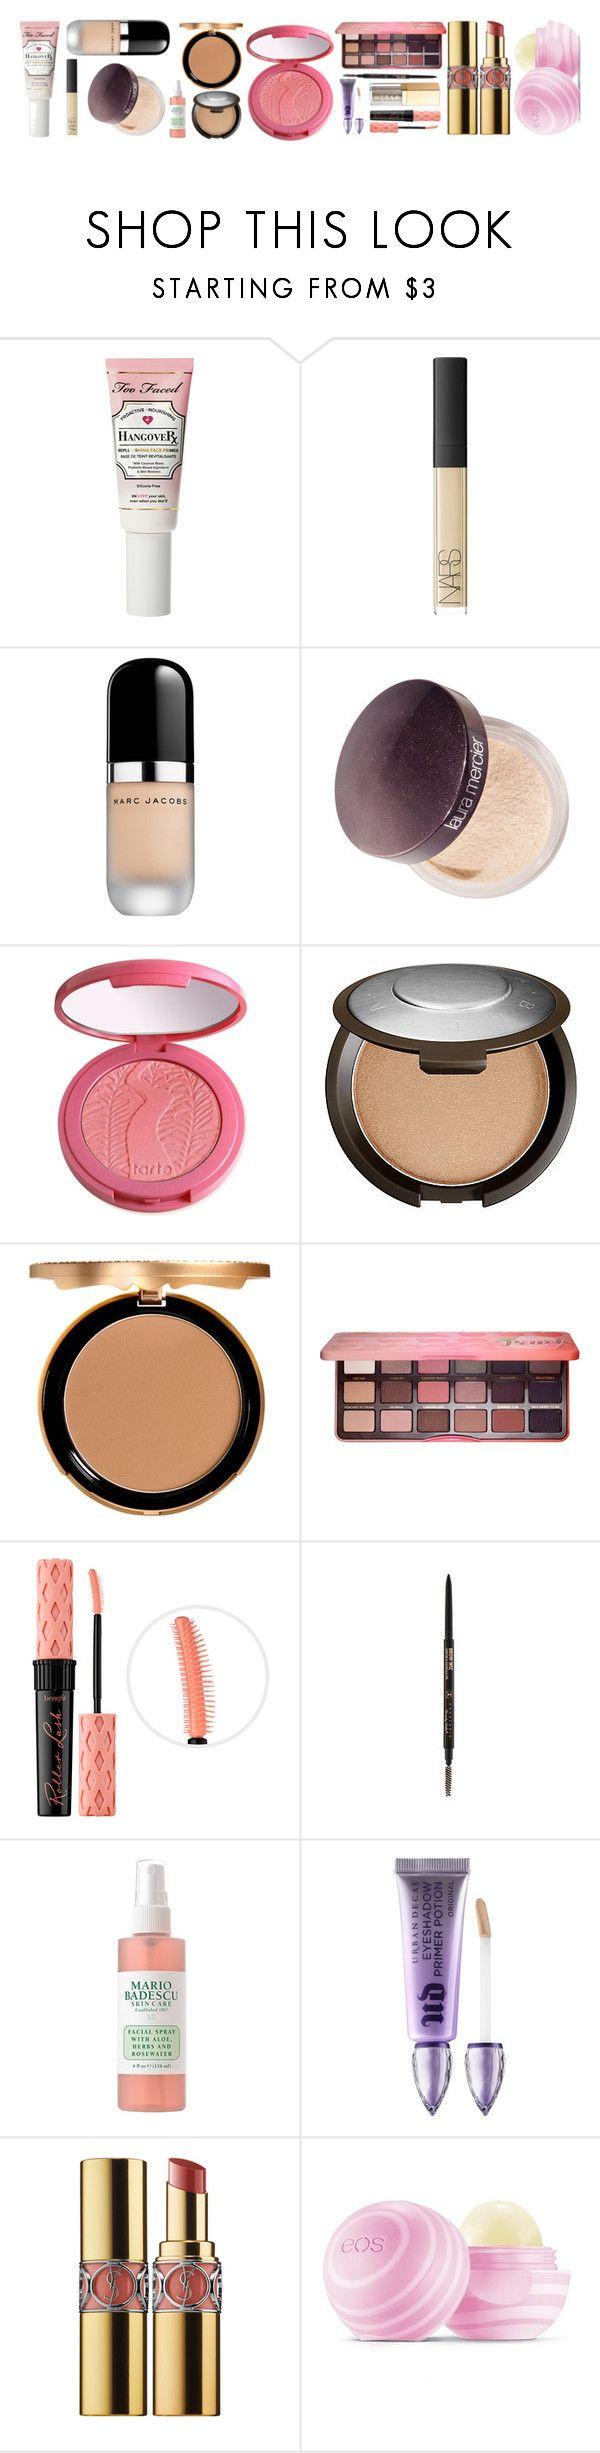 """""""Full Face of Makeup"""" by annajanssonrocks on Polyvore featuring beauty, Too Faced Cosmetics, NARS Cosmetics, Marc Jacobs, Laura Mercier, tarte, Becca, Benefit, Urban Decay and Yves Saint Laurent"""